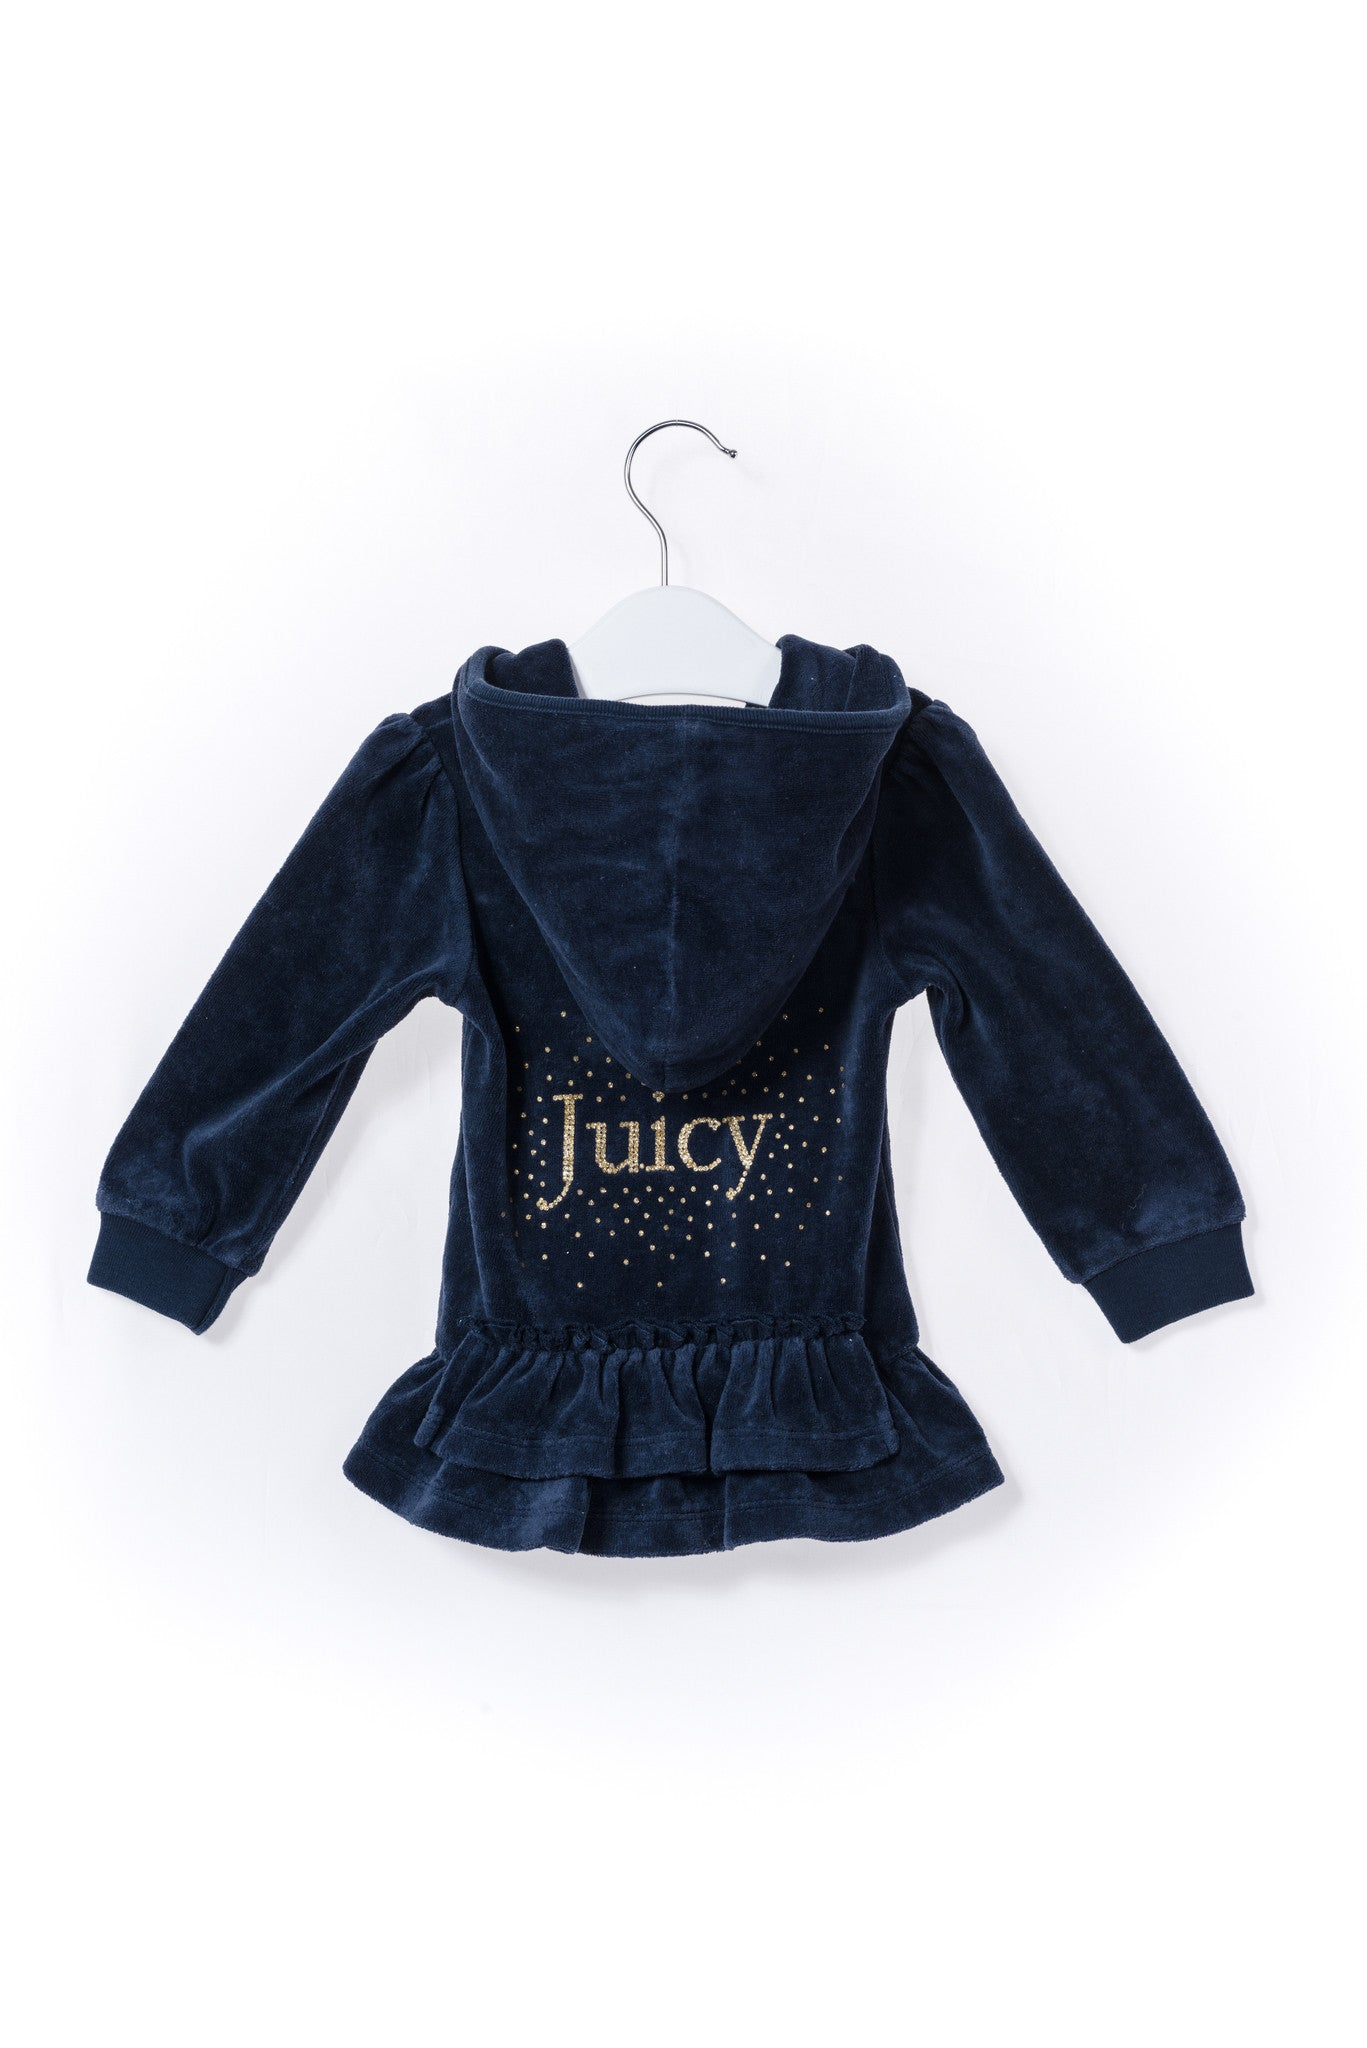 10001199 Juicy Couture Baby~Sweatshirt 12-18M at Retykle